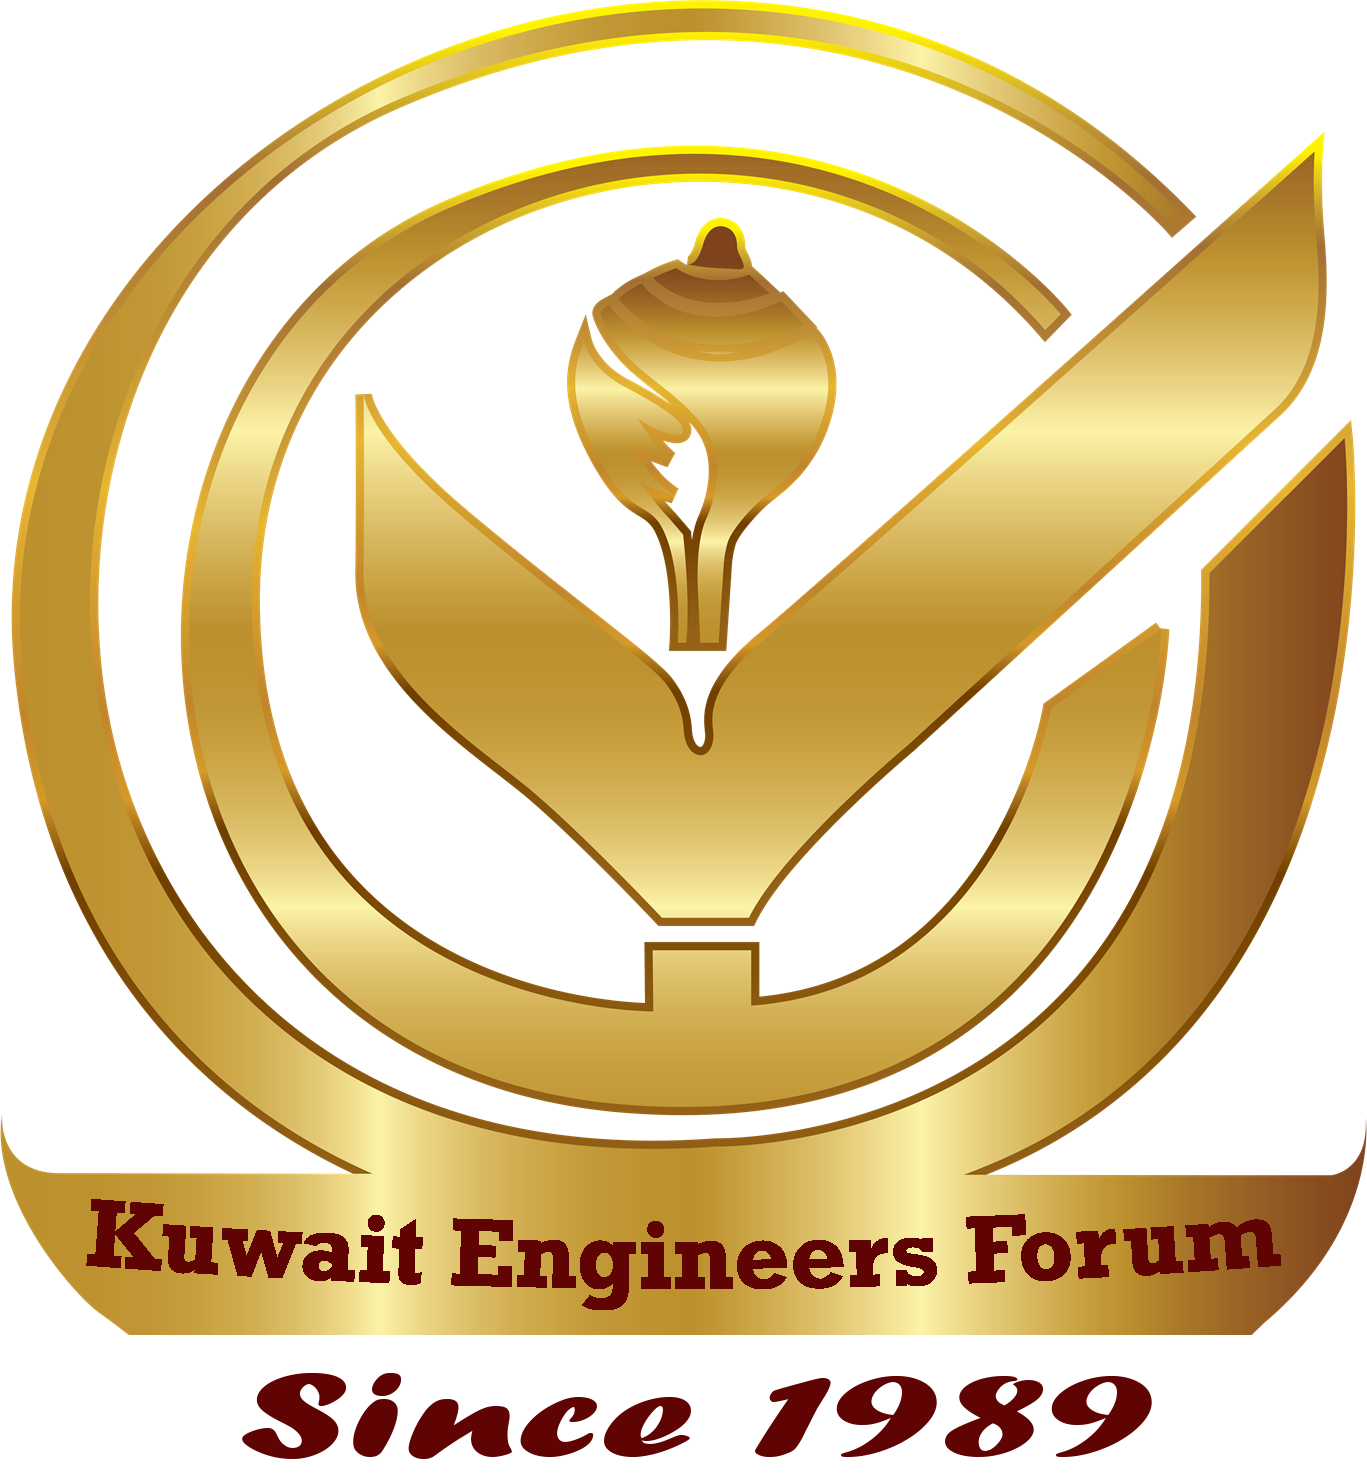 Kuwait Engineers Forum (KEF)